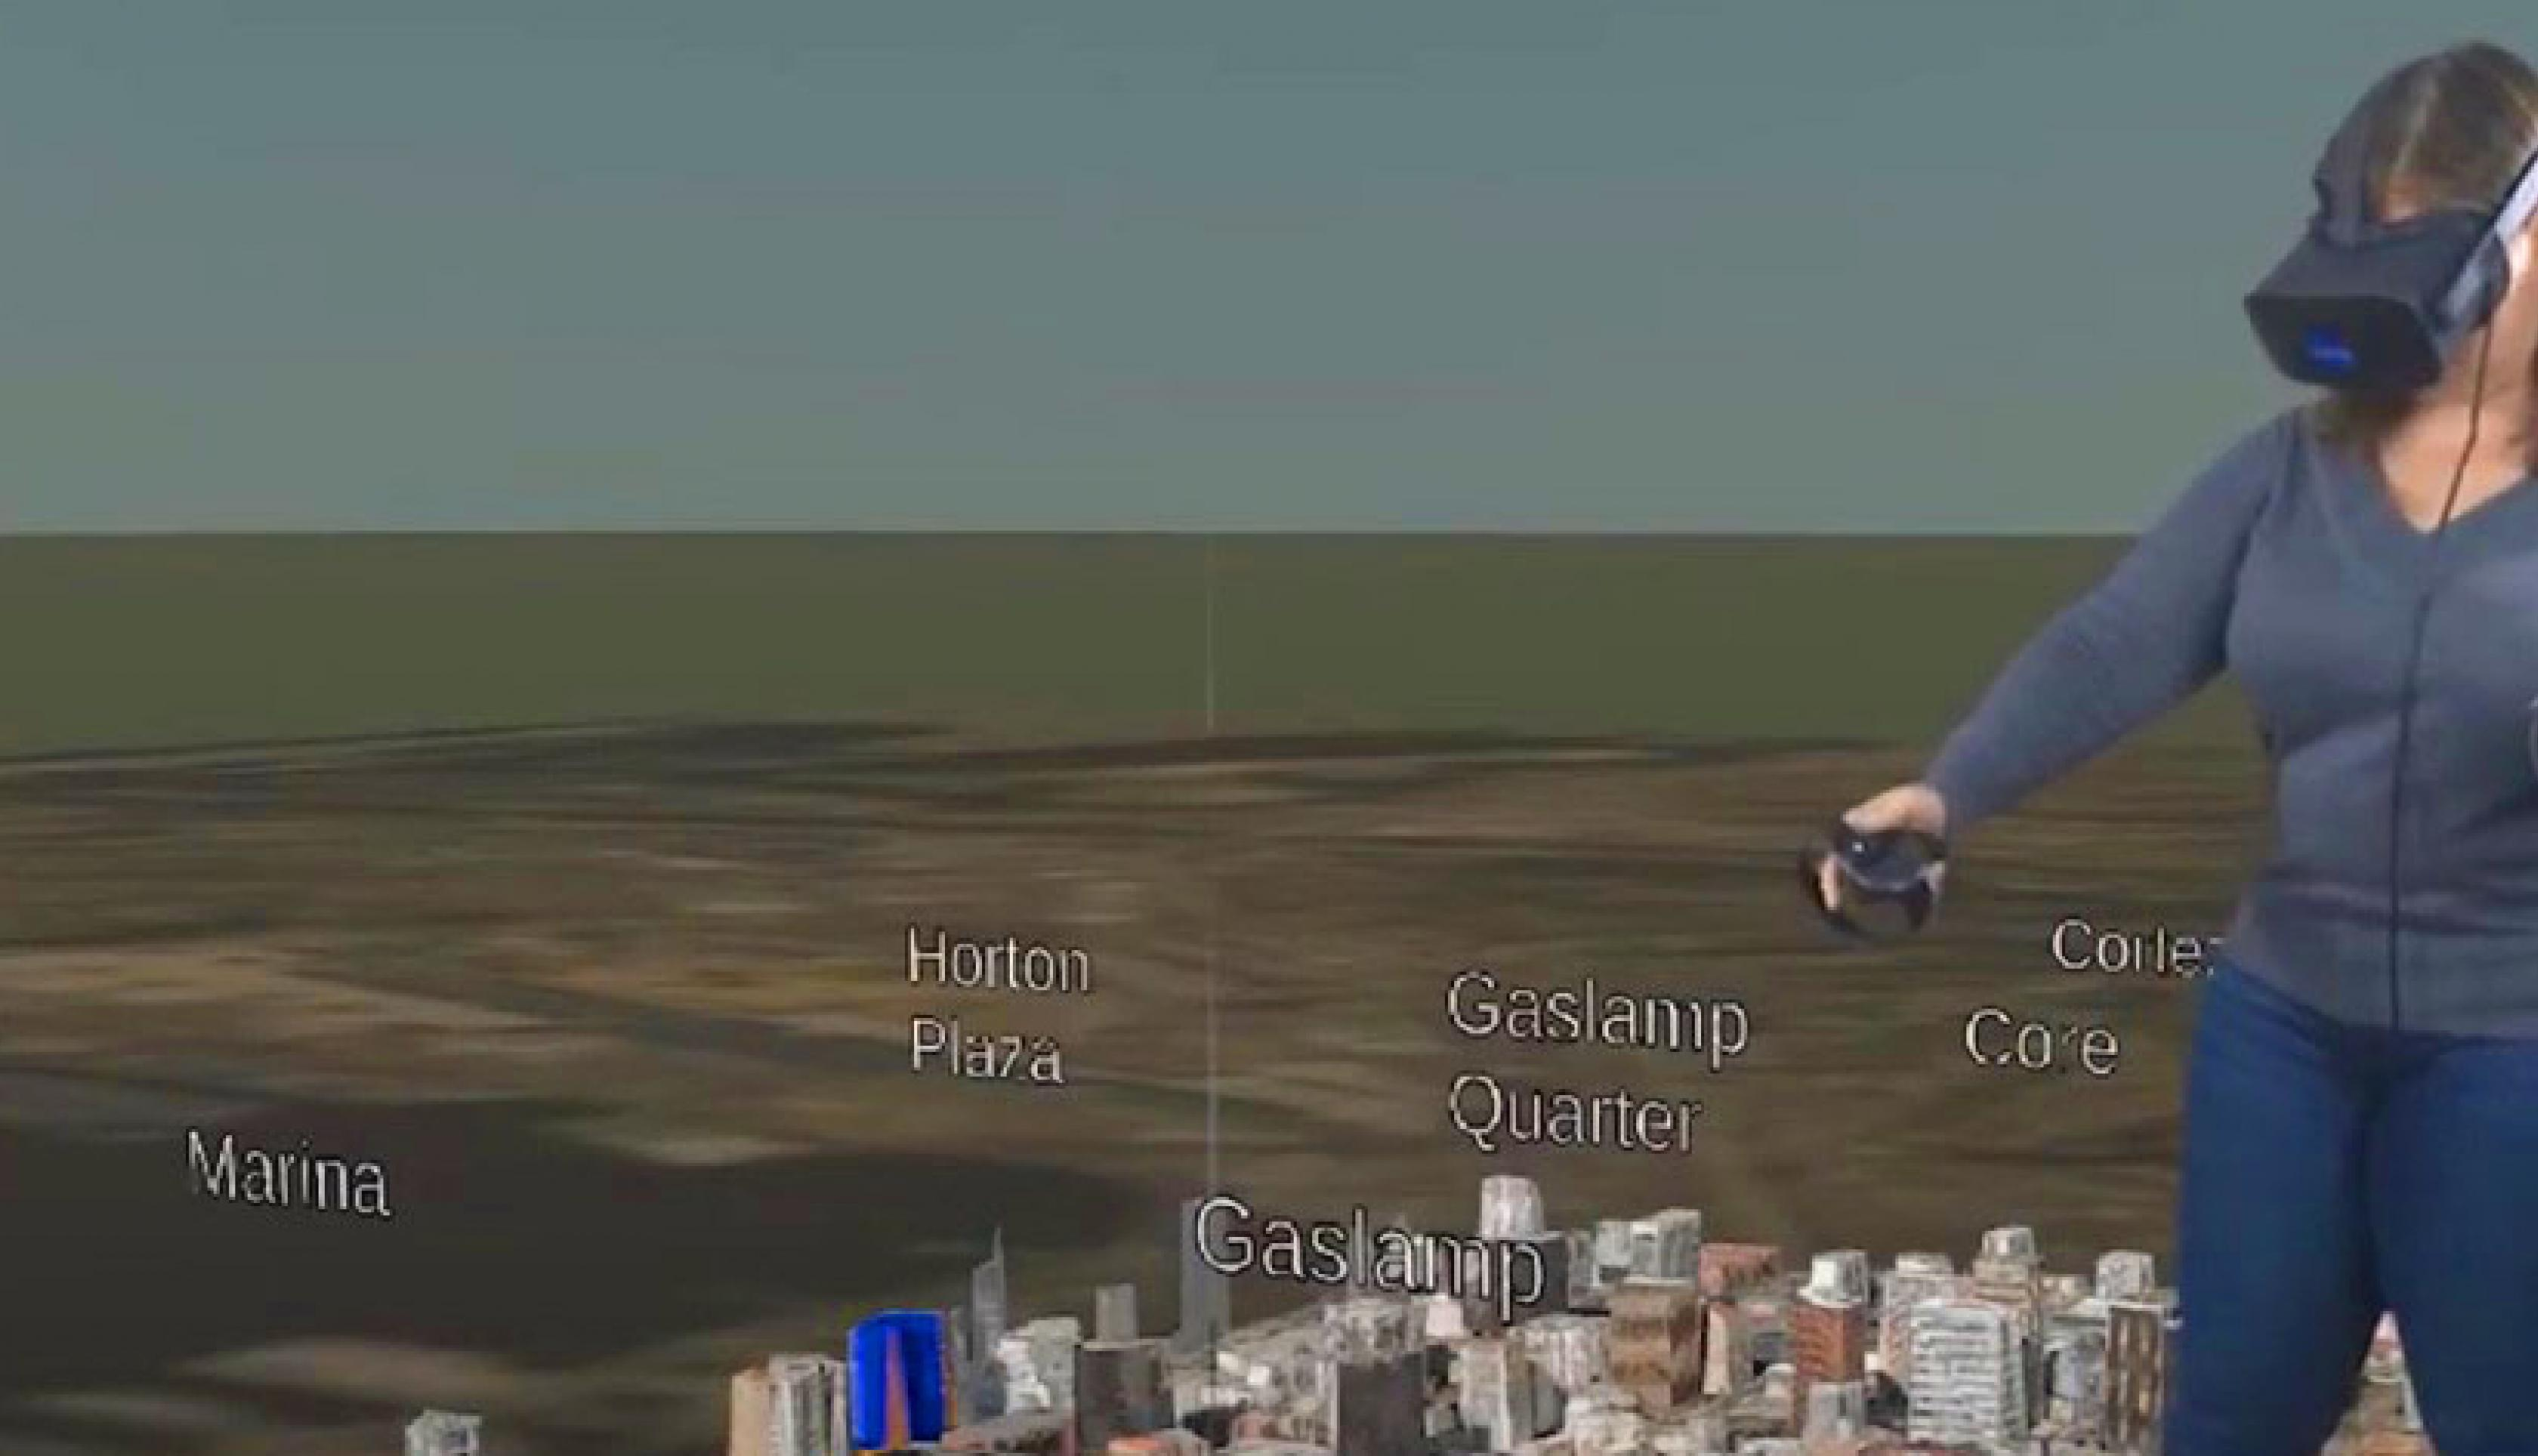 Shayna Skolnik, founder and CEO of Navteca, demonstrates visualizing GIS and disaster application data in virtual reality.